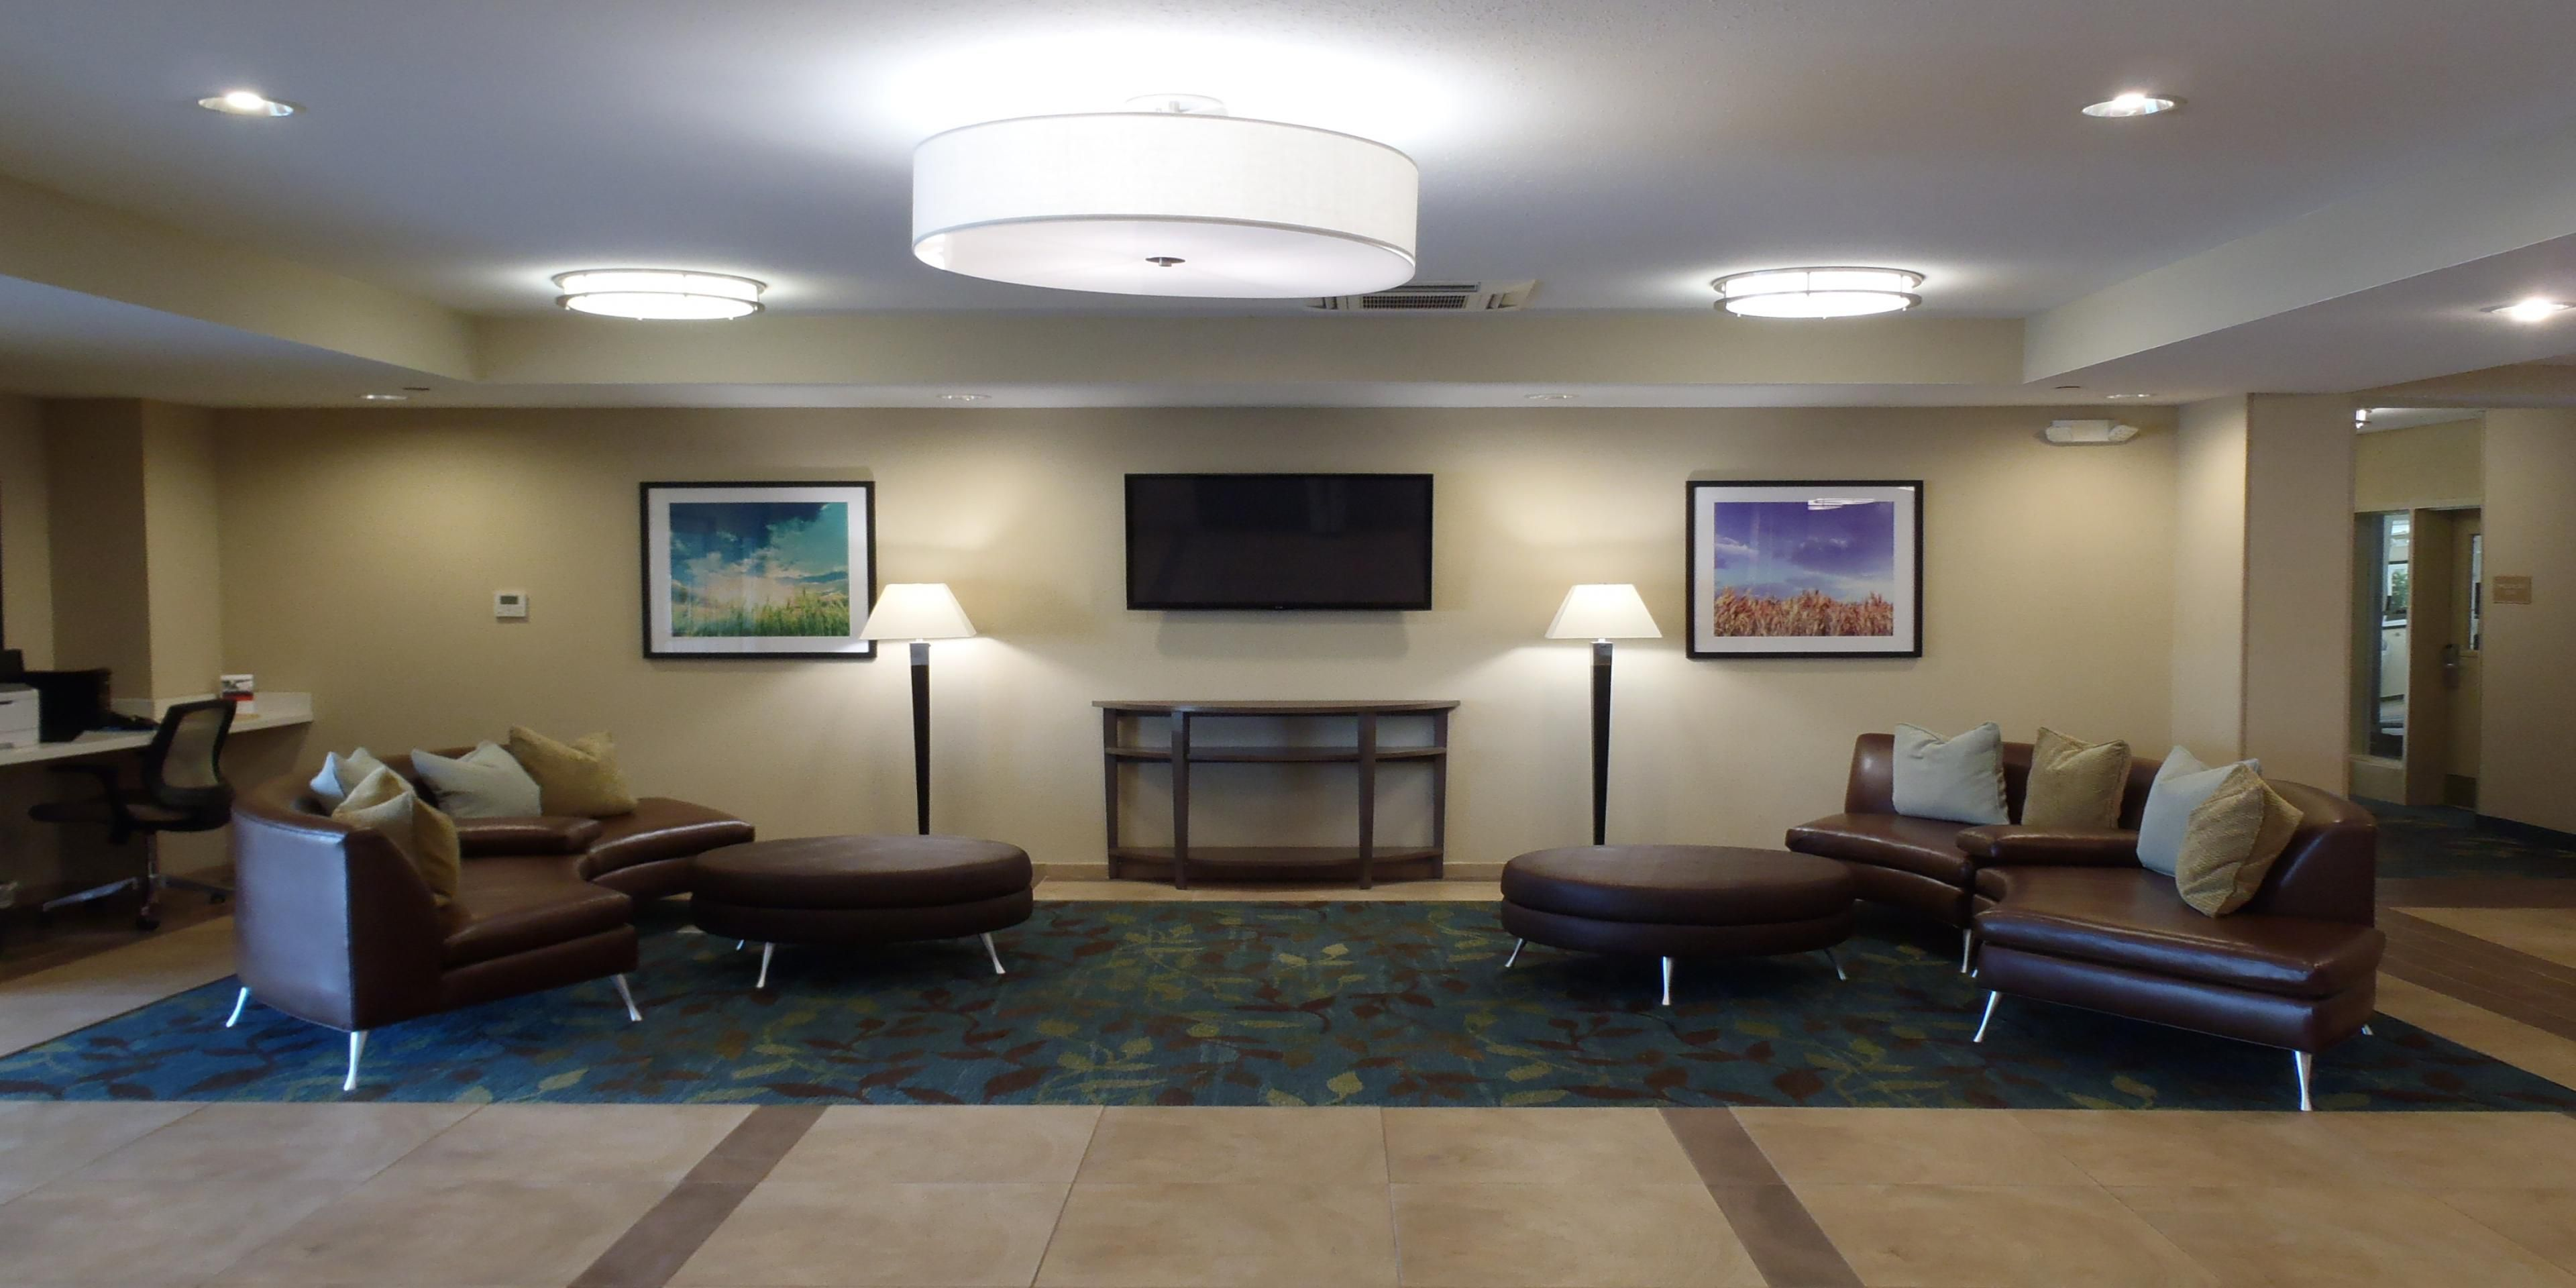 Midland Hotels: Candlewood Suites Midland SW   Extended Stay Hotel In  Midland, Texas